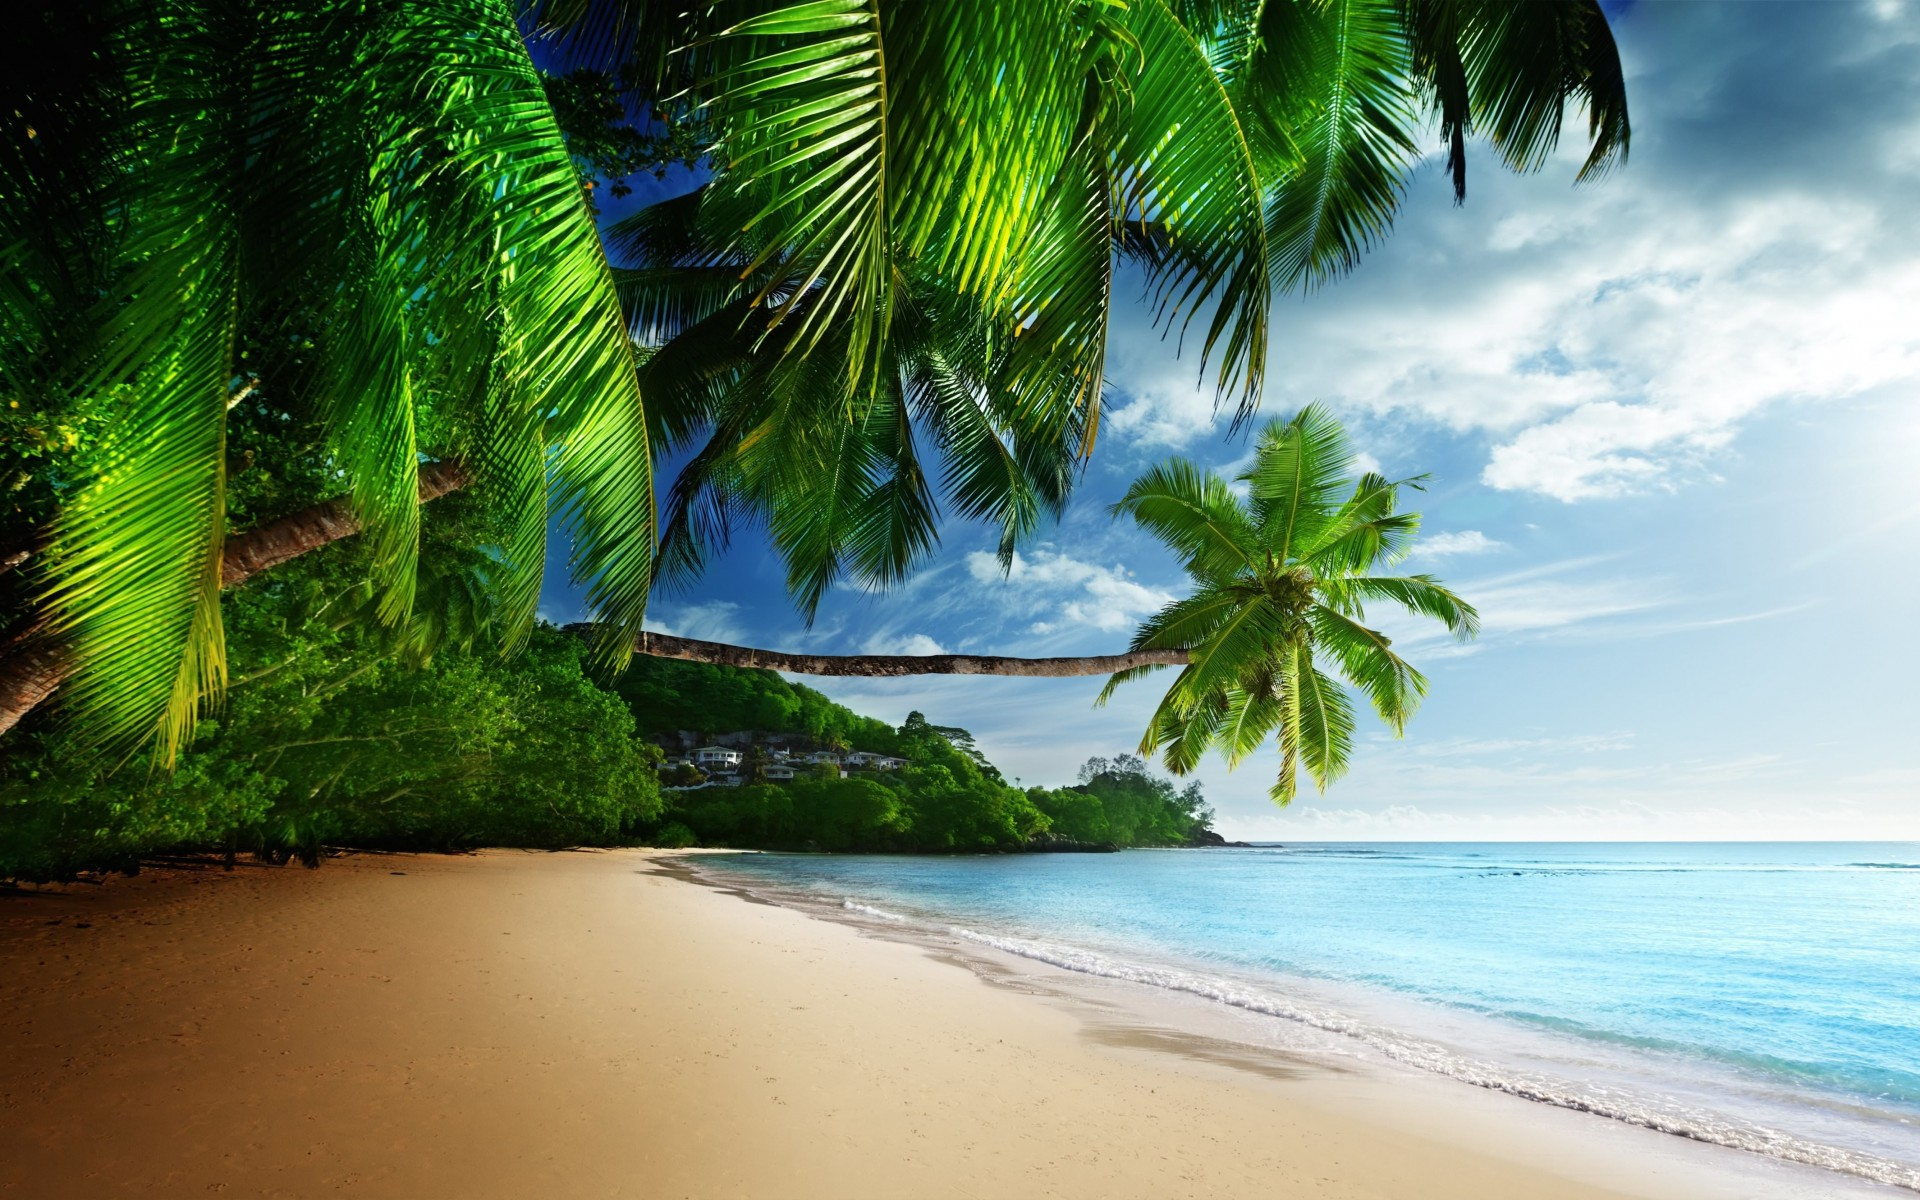 Tropical Paradise Beach Wallpaper for Desktop 1920x1200